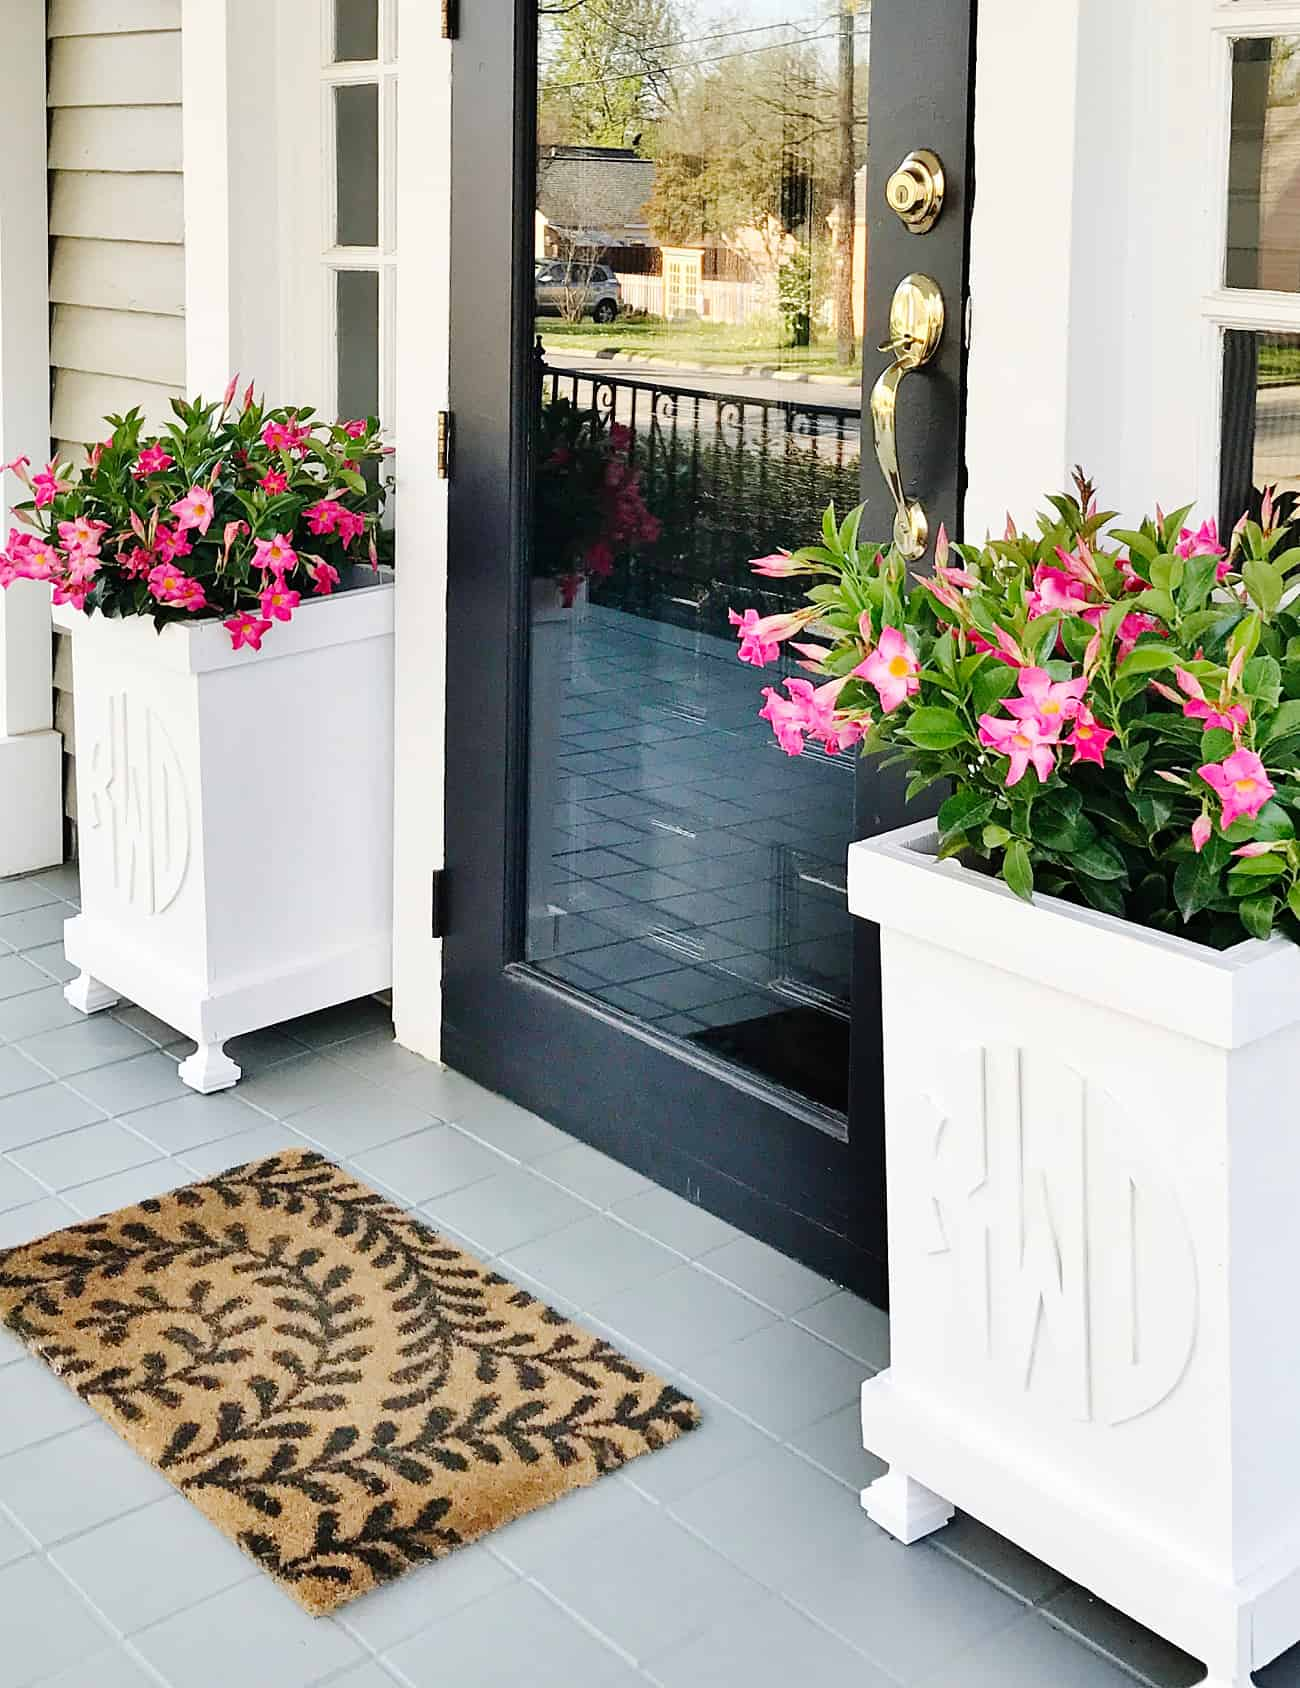 simple planter projects you can finish in a weekend